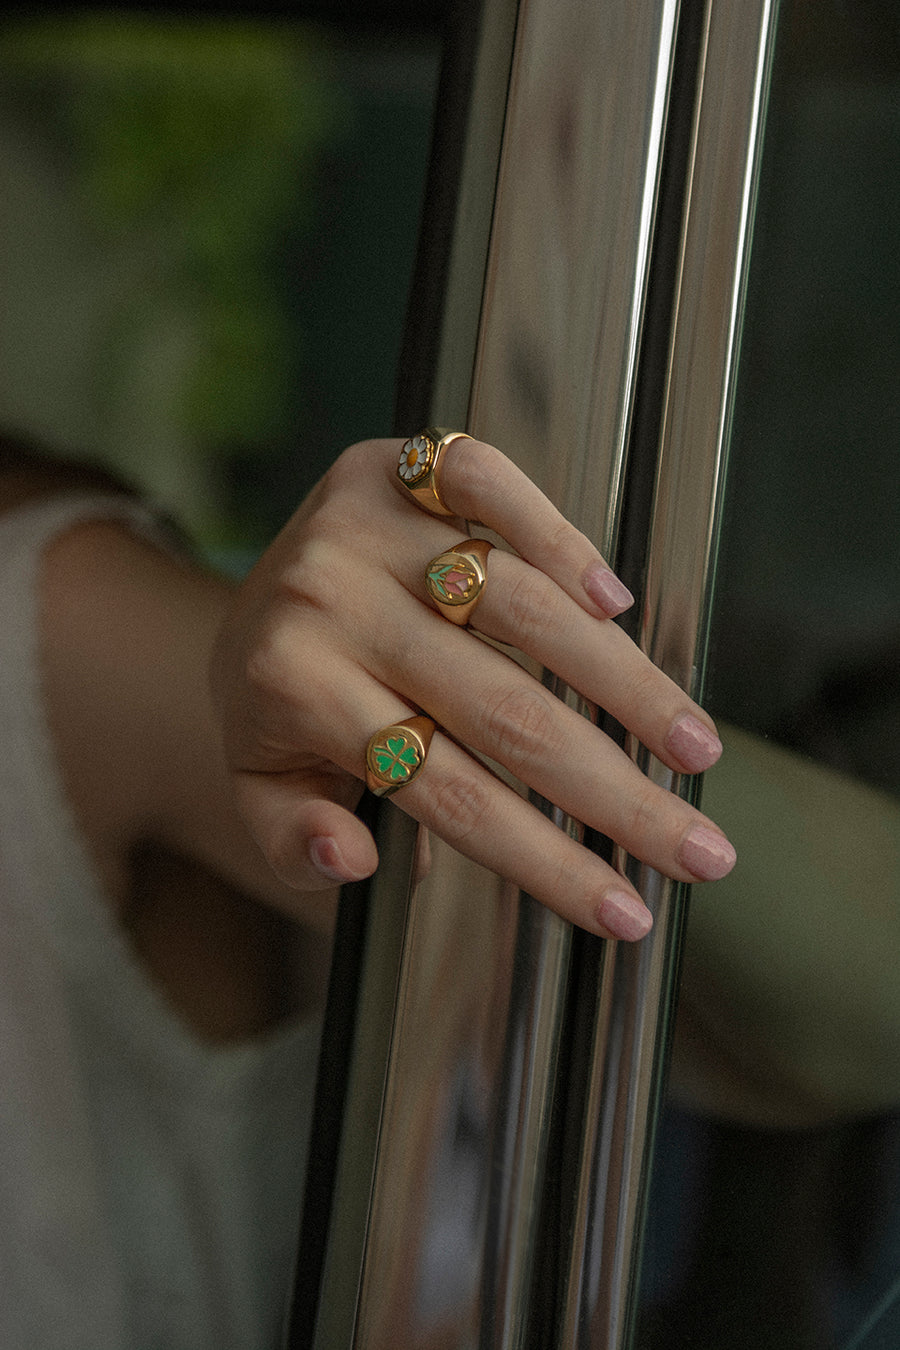 Gold clover ring - Wilhelmina Garcia